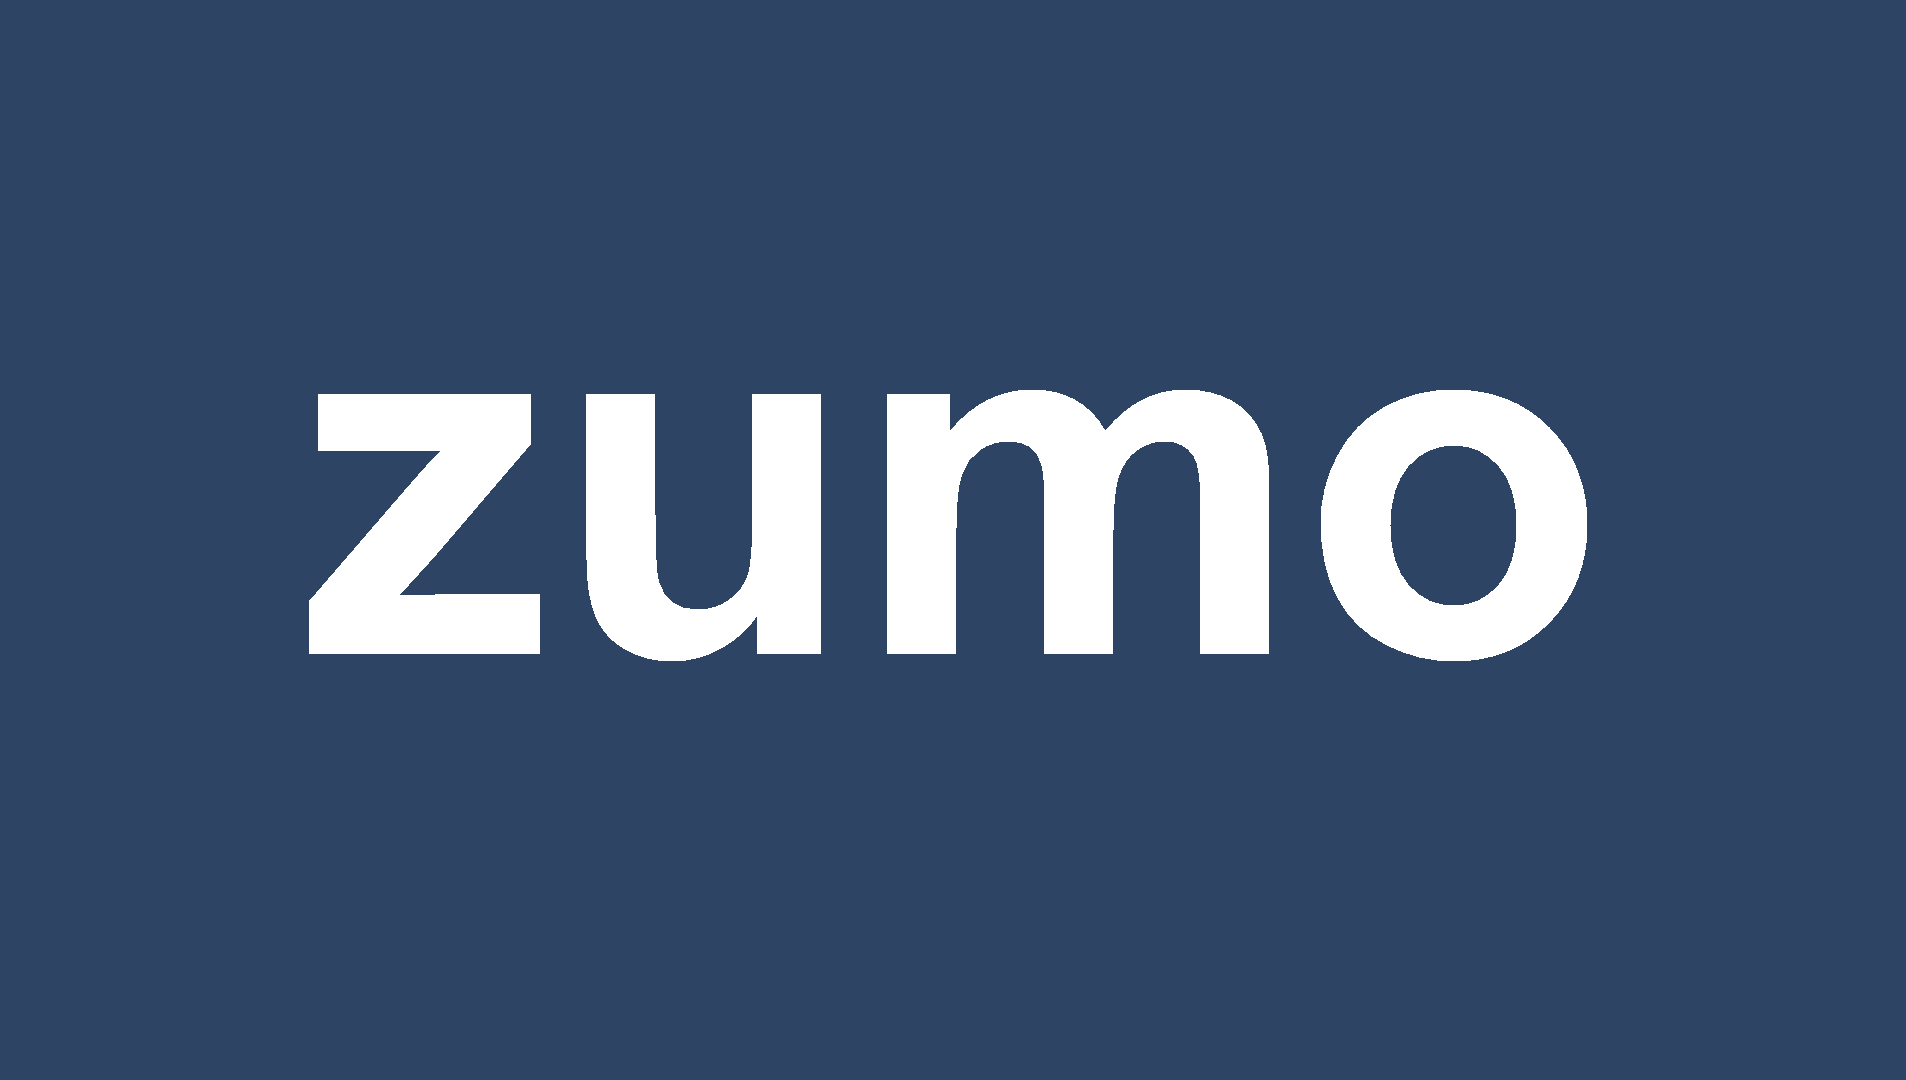 Zumo looking to expand the customer base keeps heavy rewards for them - TCR